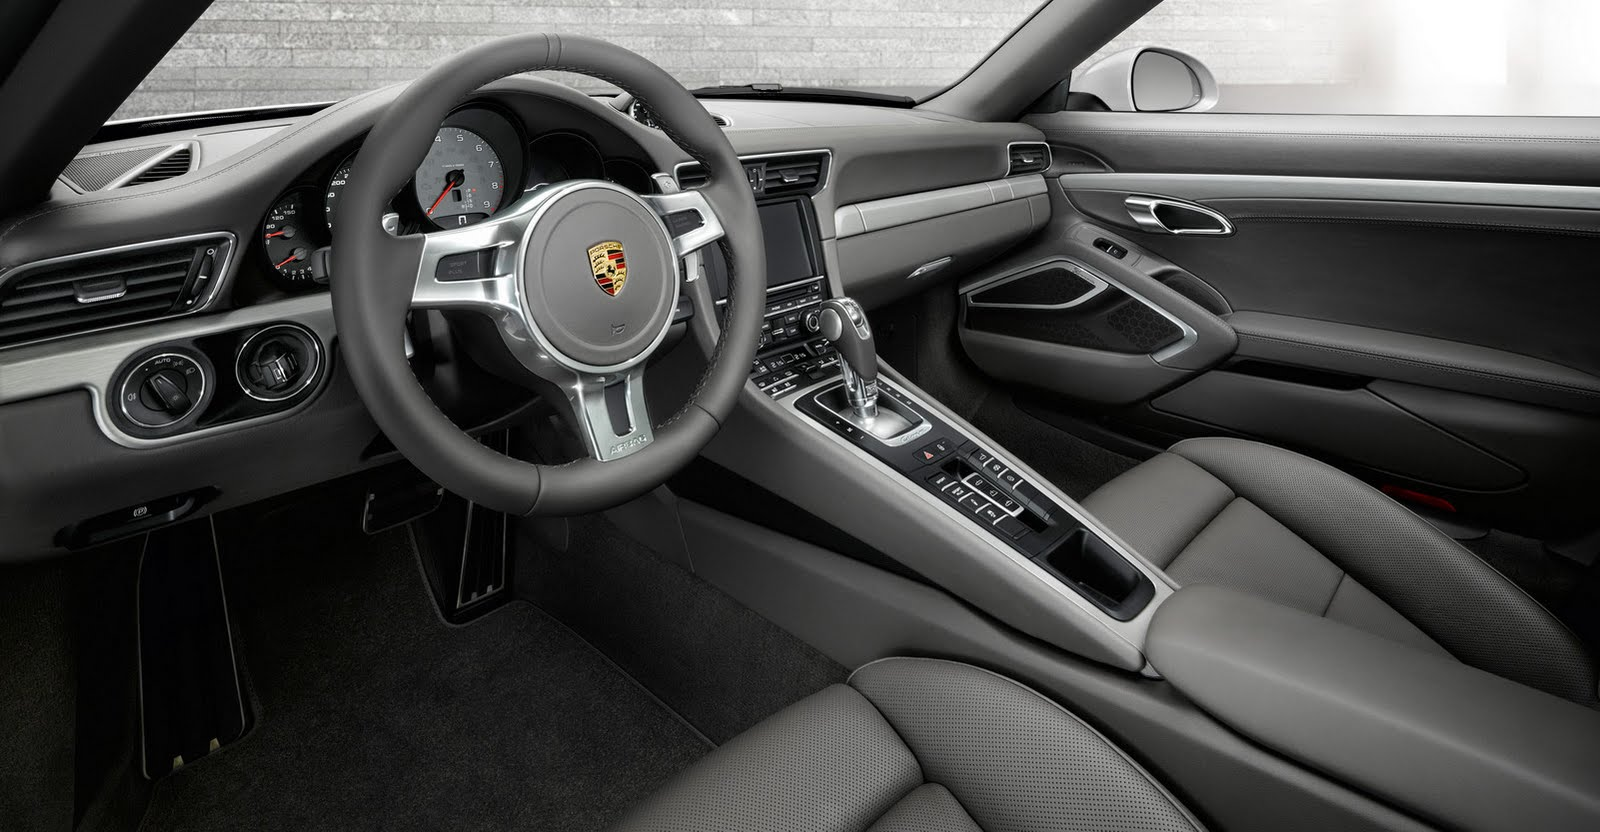 Build quality and style are superb in the refined new Porsche 911 Carrera.